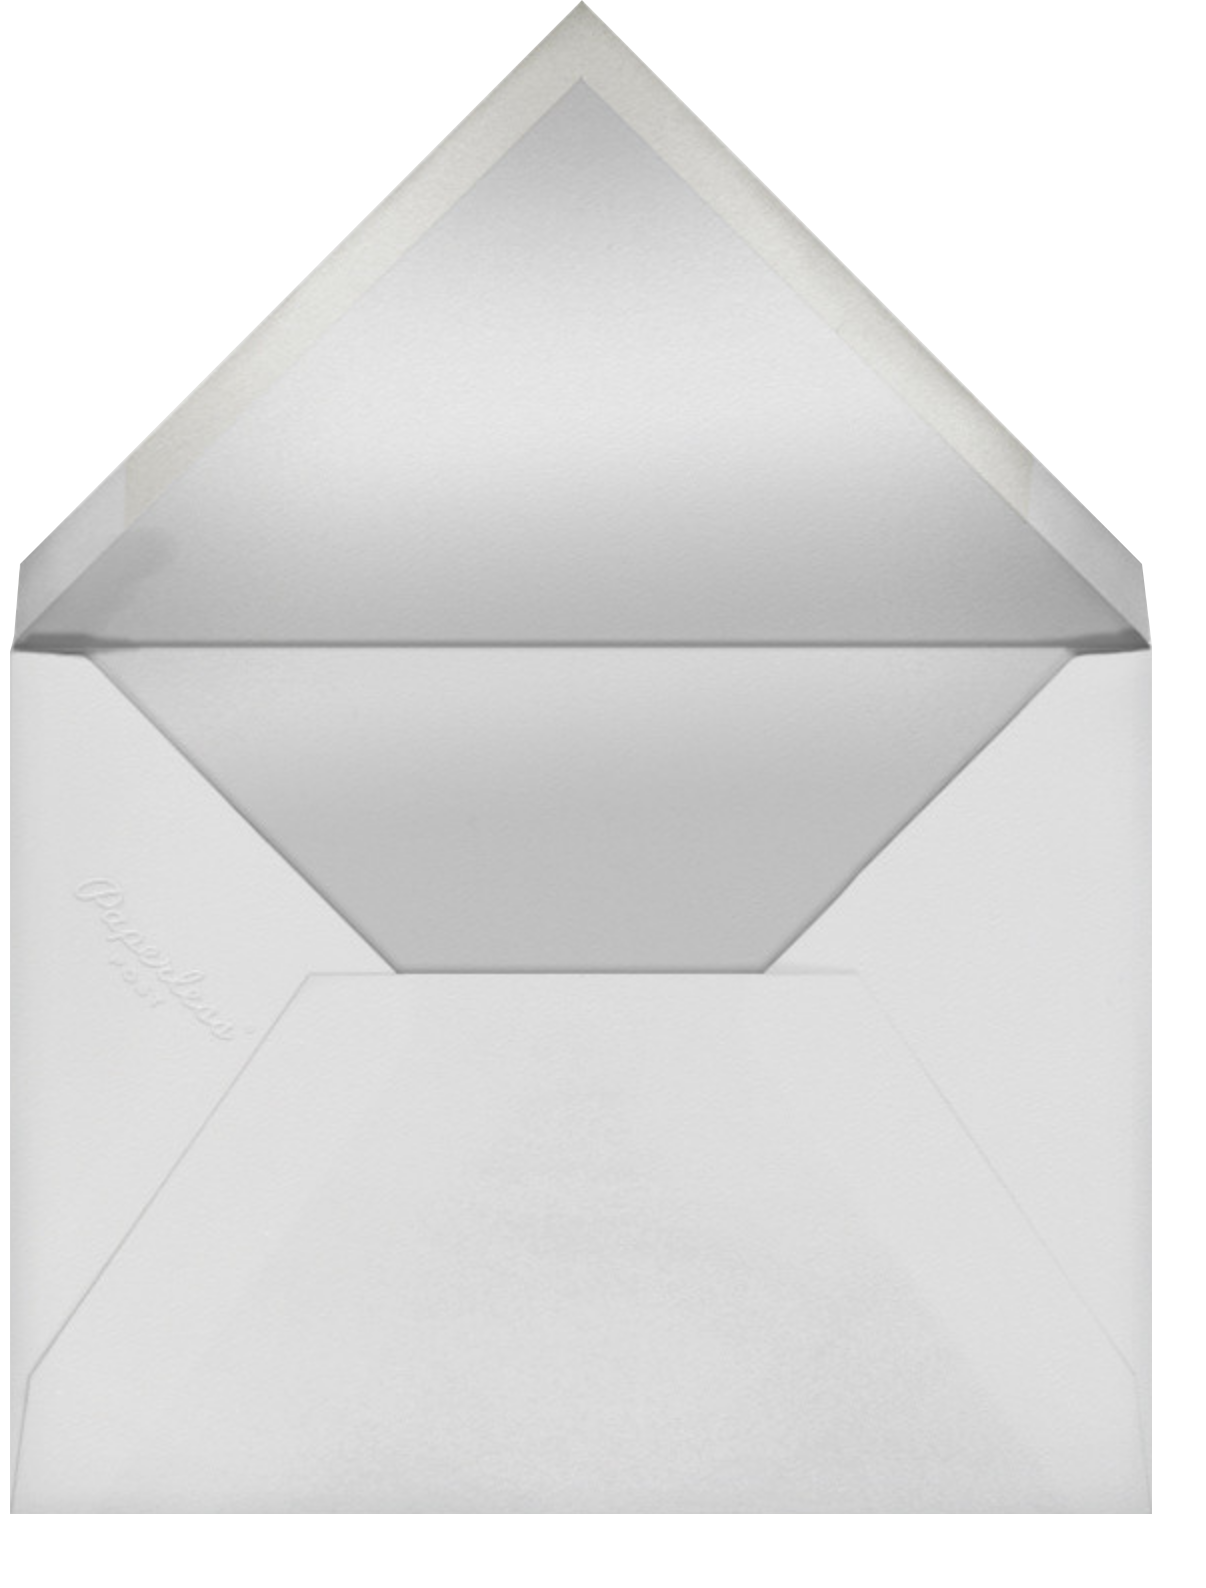 Dad's Favorite Frame - White - Paperless Post - Father's Day - envelope back